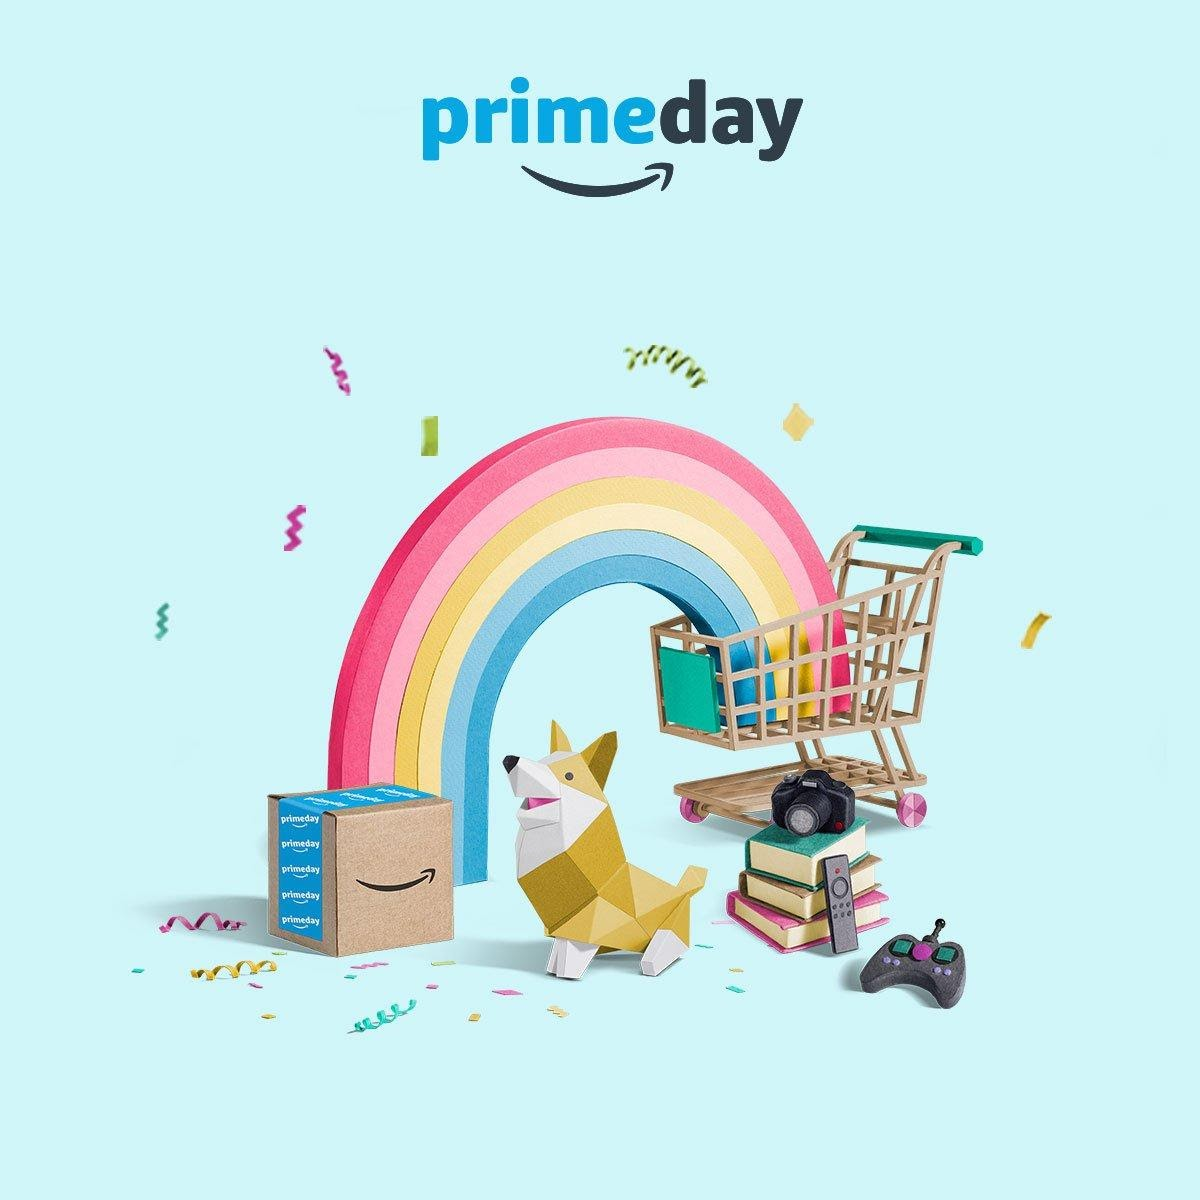 Get ready for Prime Day